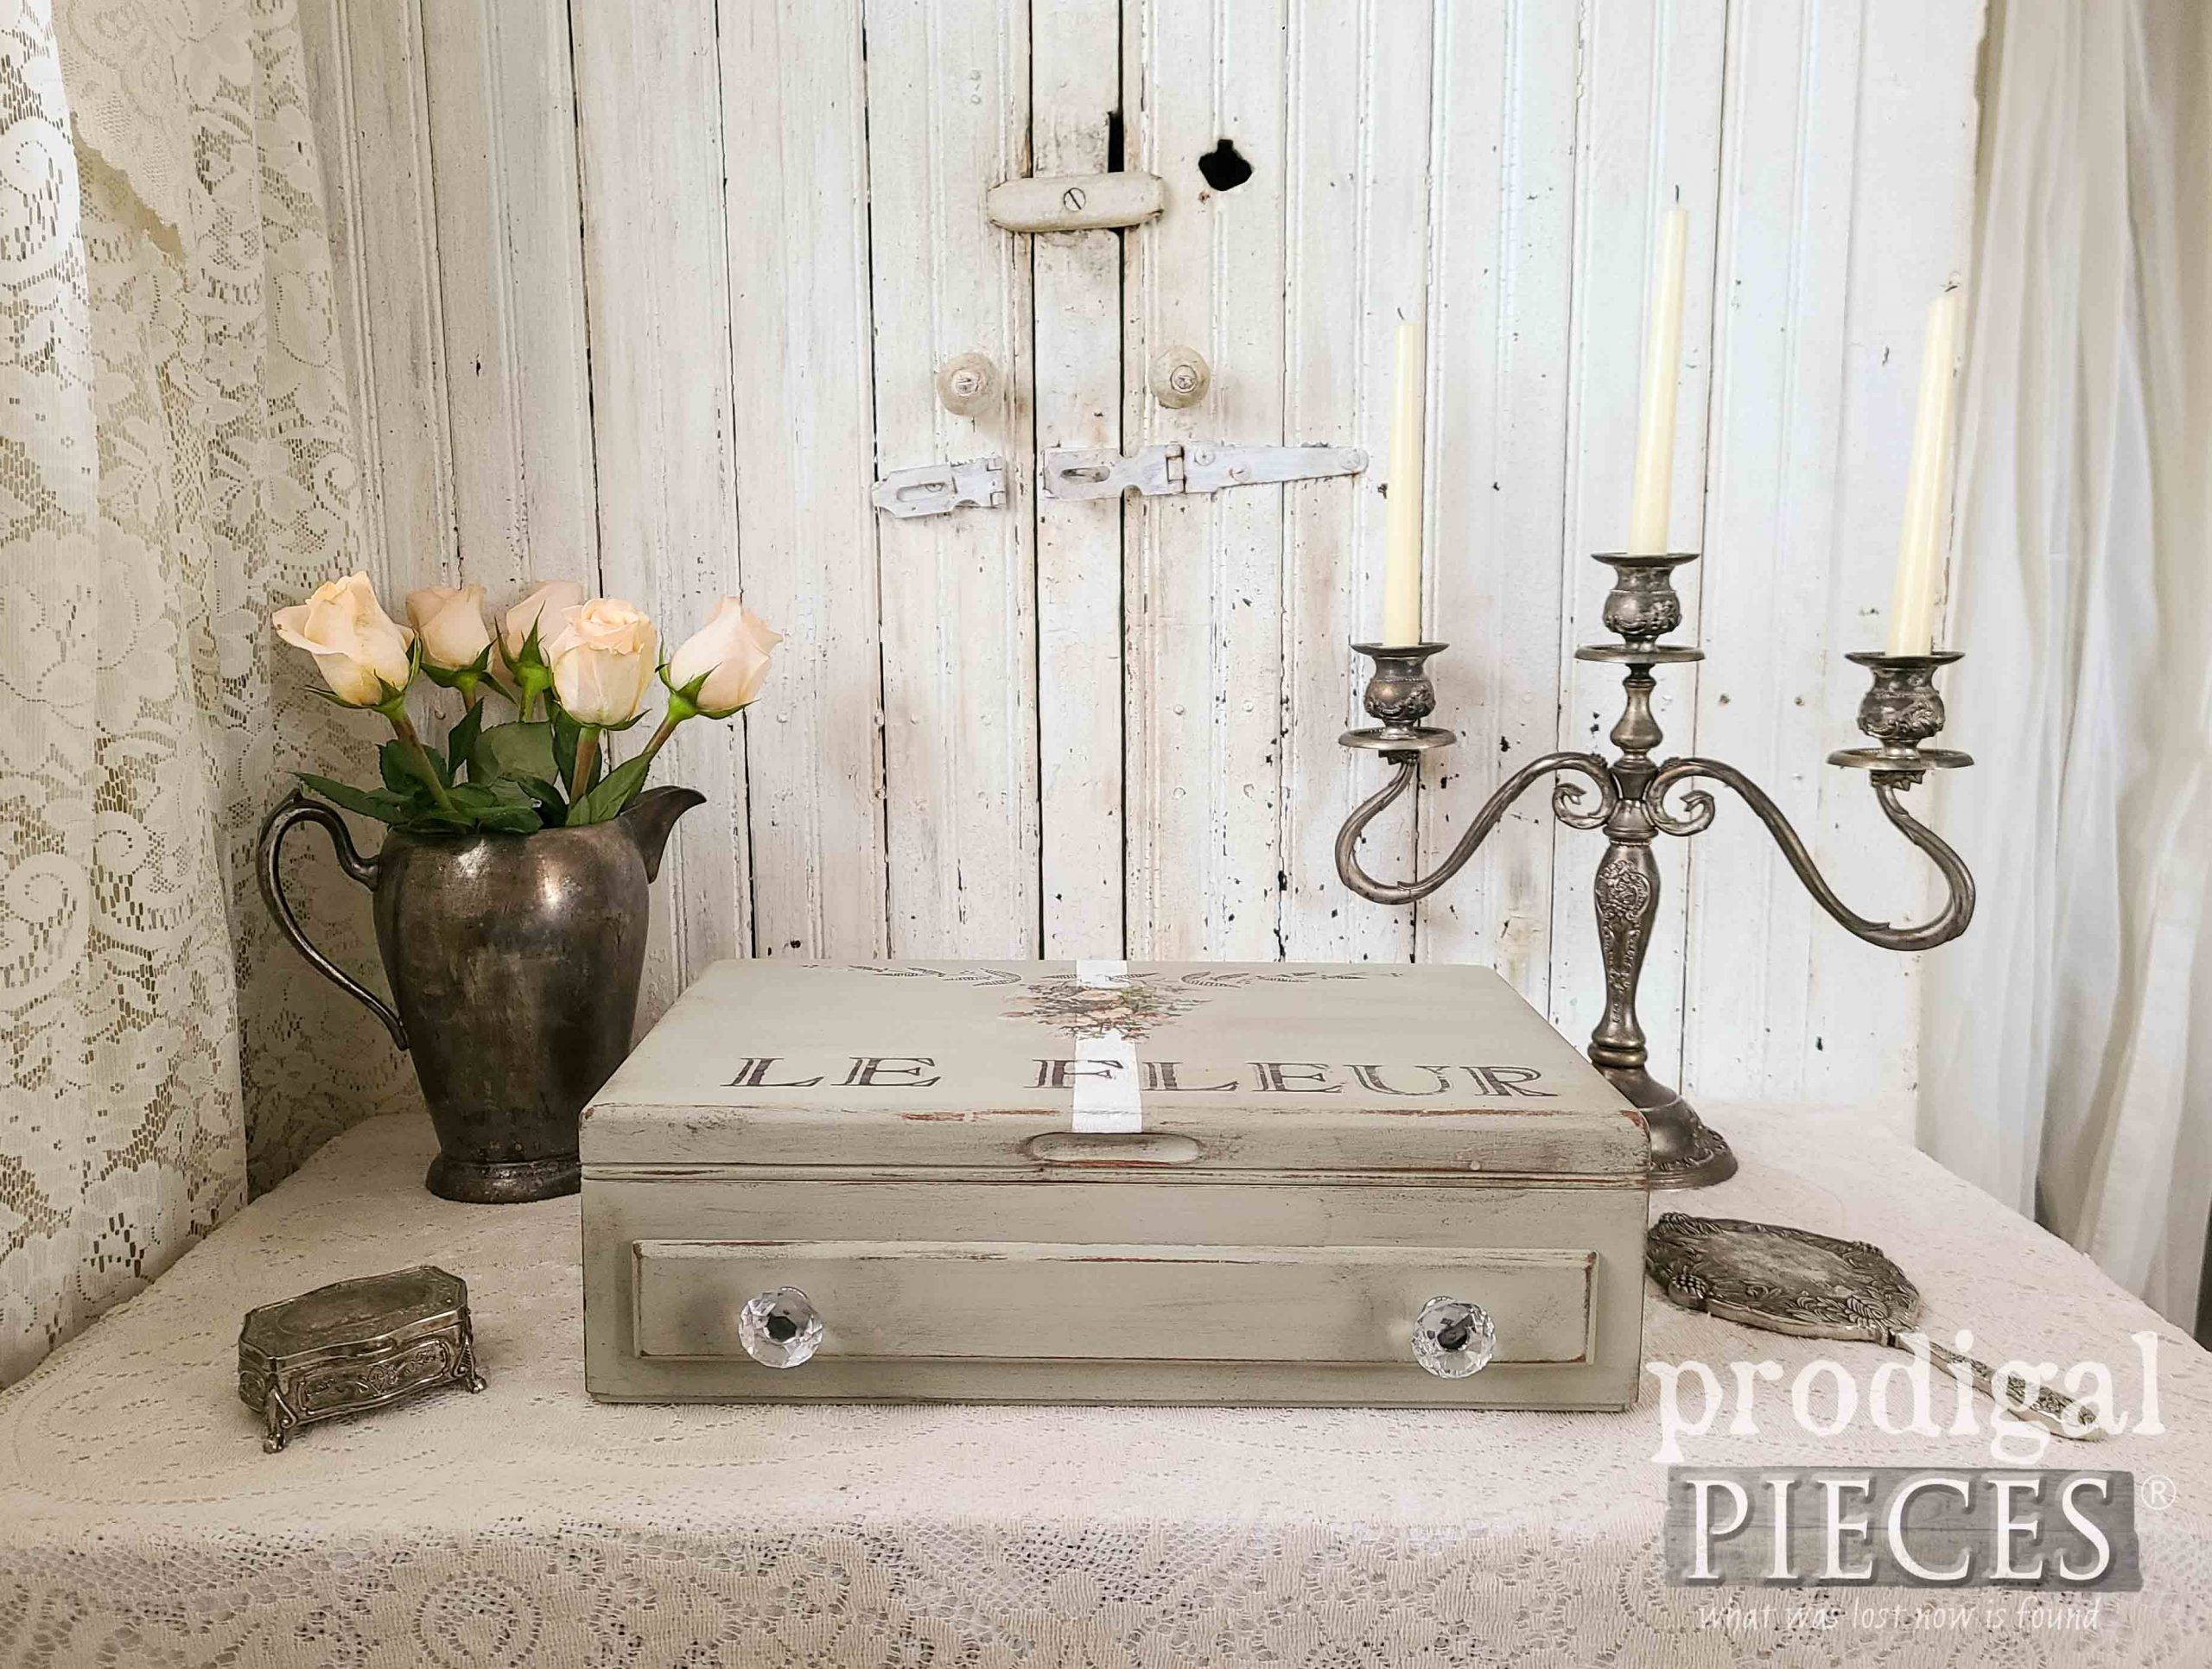 Vintage Silverware Chest Upcycled into French Chic Storage Box by Larissa of Prodigal Pieces | prodigalpieces.com #prodigalpieces #diy #home #homedecor #upcycled